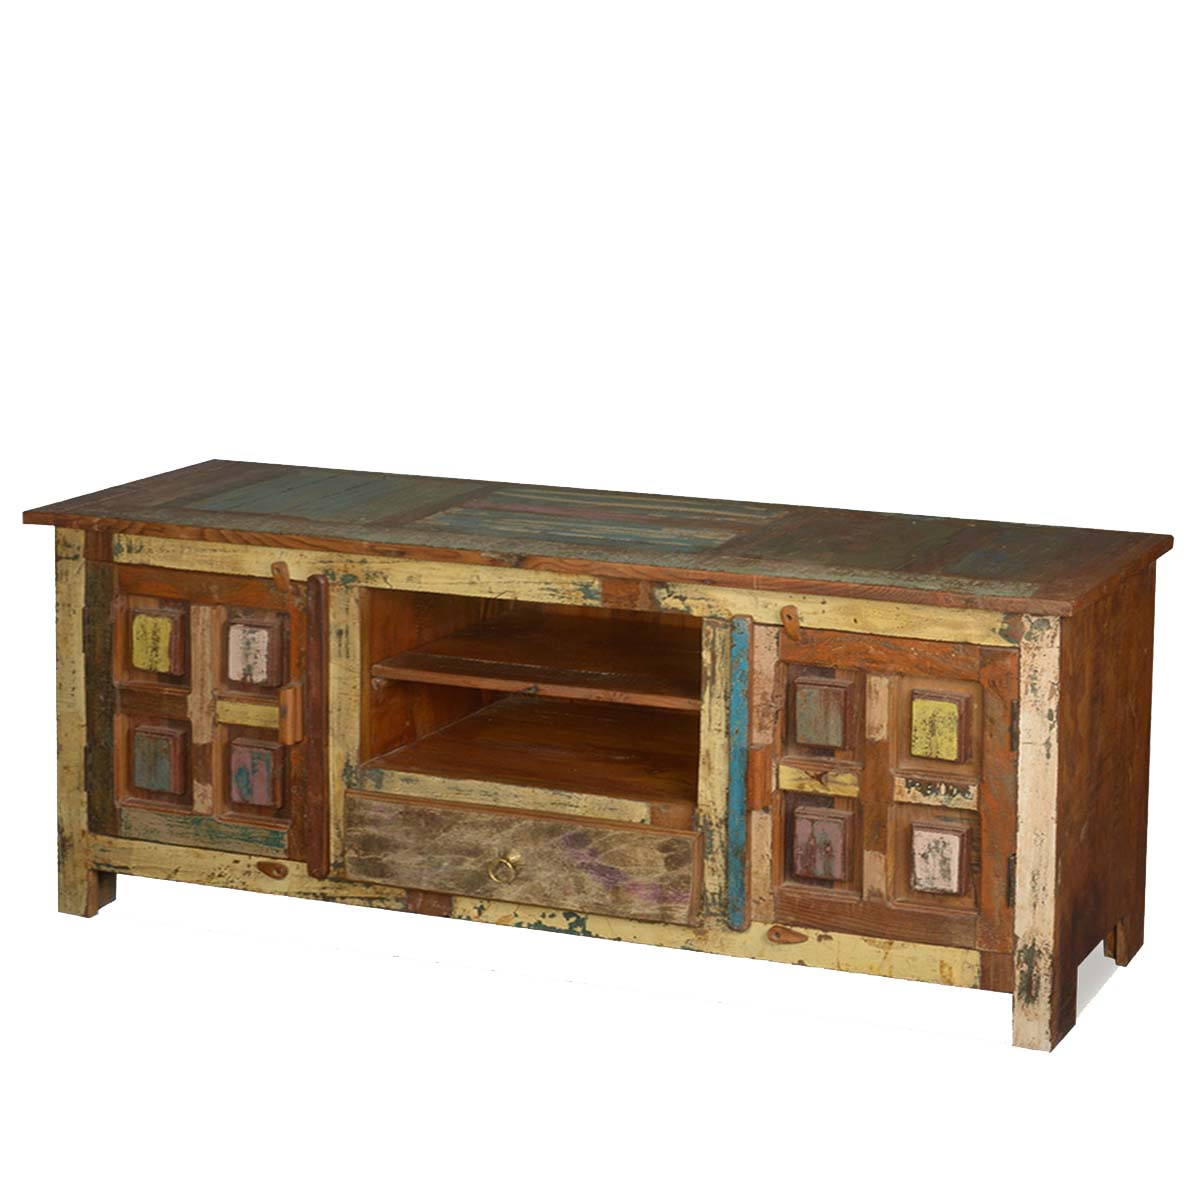 Favorite Rustic Tv Stands With Rustic Tv Stand With Casters Walmart X Plans Diy Barn Doors Country (View 9 of 20)